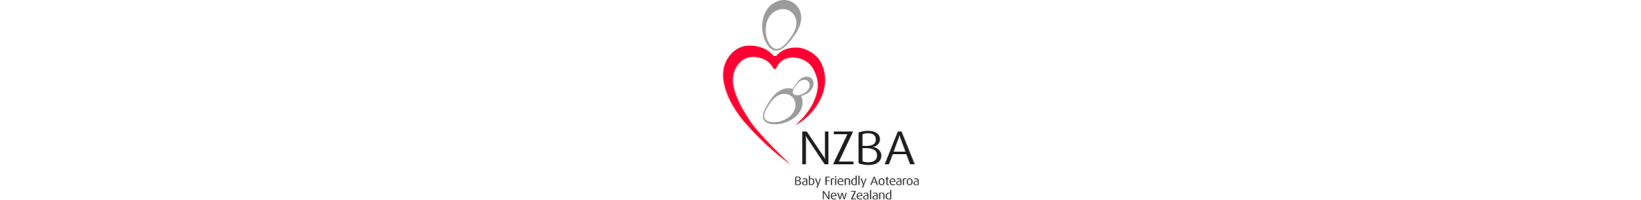 Supported by NZBA